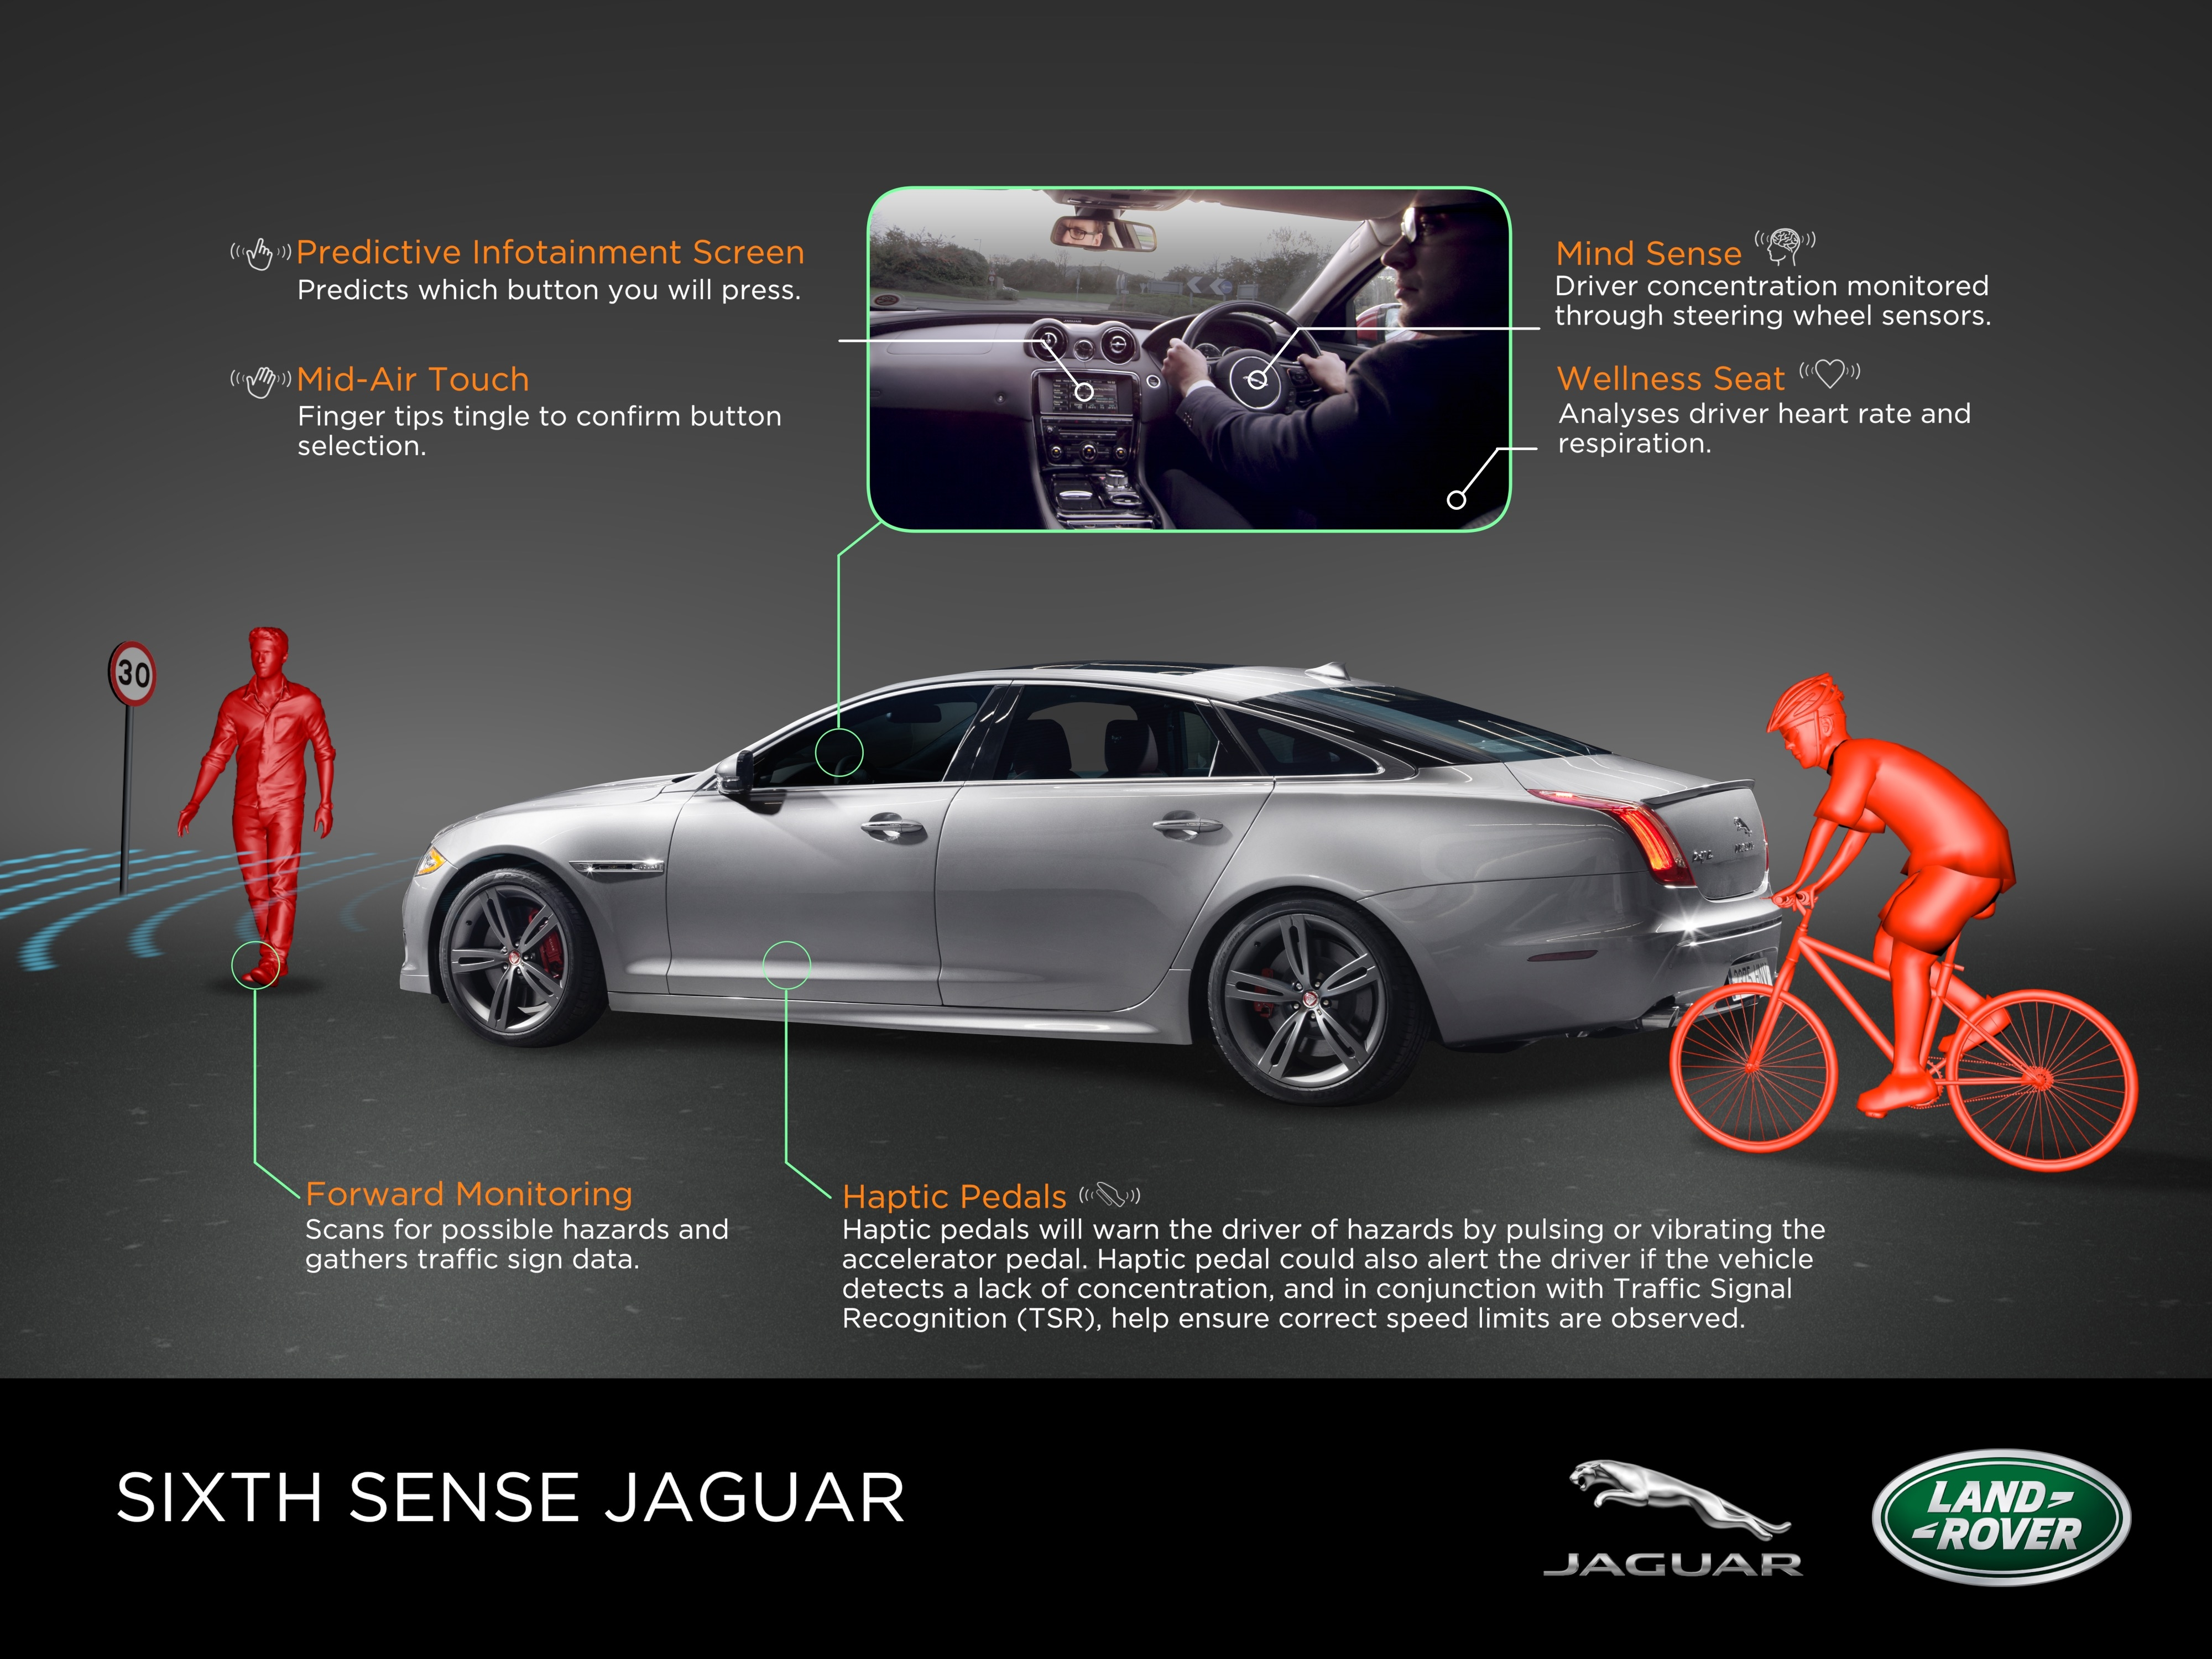 Jaguar wants to monitor its drivers' brainwaves, heart rate, and breathing